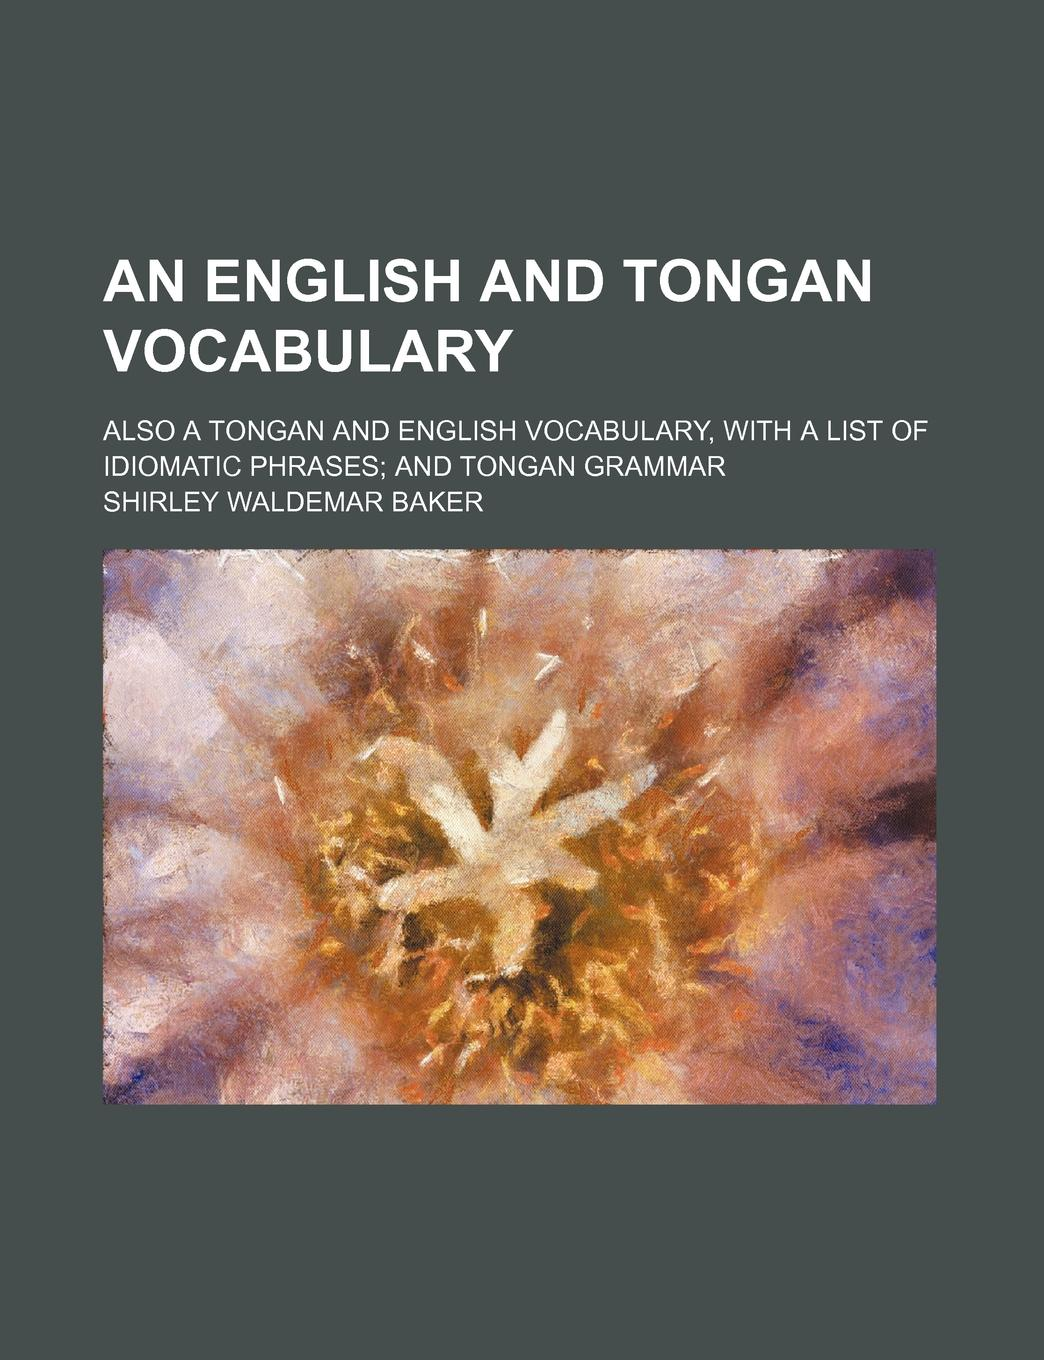 цена на Shirley Waldemar Baker An English and Tongan Vocabulary; Also a Tongan and English Vocabulary, with a List of Idiomatic Phrases; And Tongan Grammar